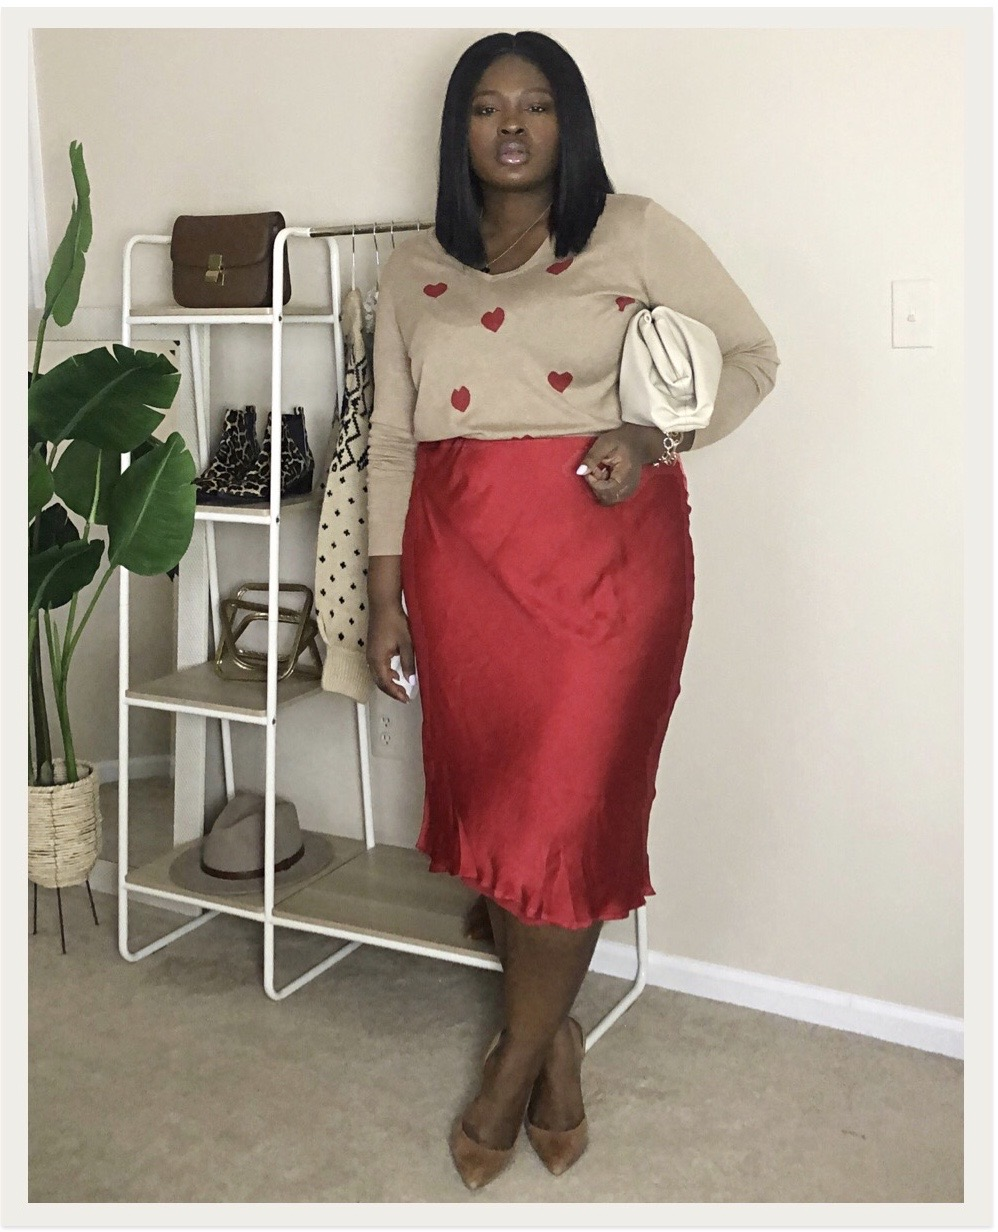 date night outfit ideas from supplechic a fashion and lifestyle blog based out of baltimore